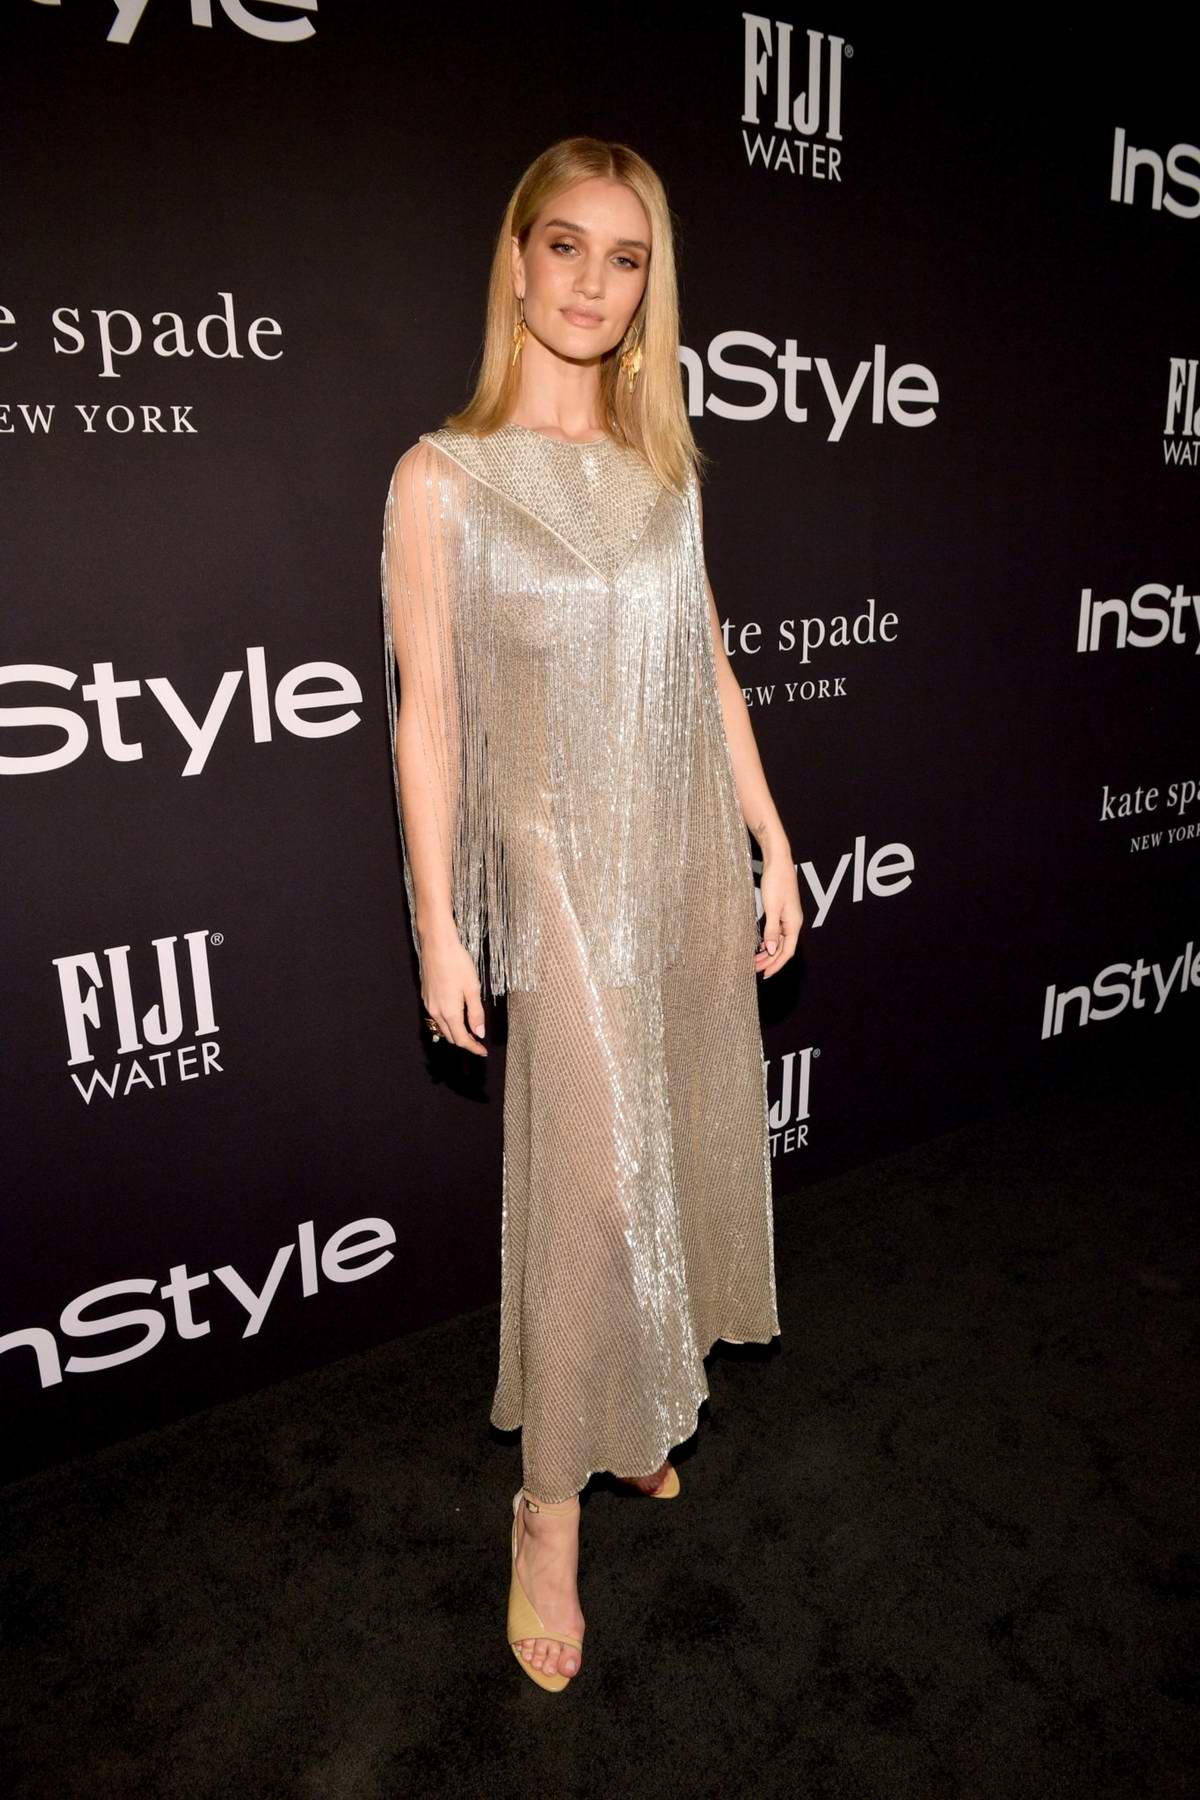 Rosie Huntington-Whiteley attends the 4th Annual InStyle Awards 2018 at the Getty Center in Los Angeles